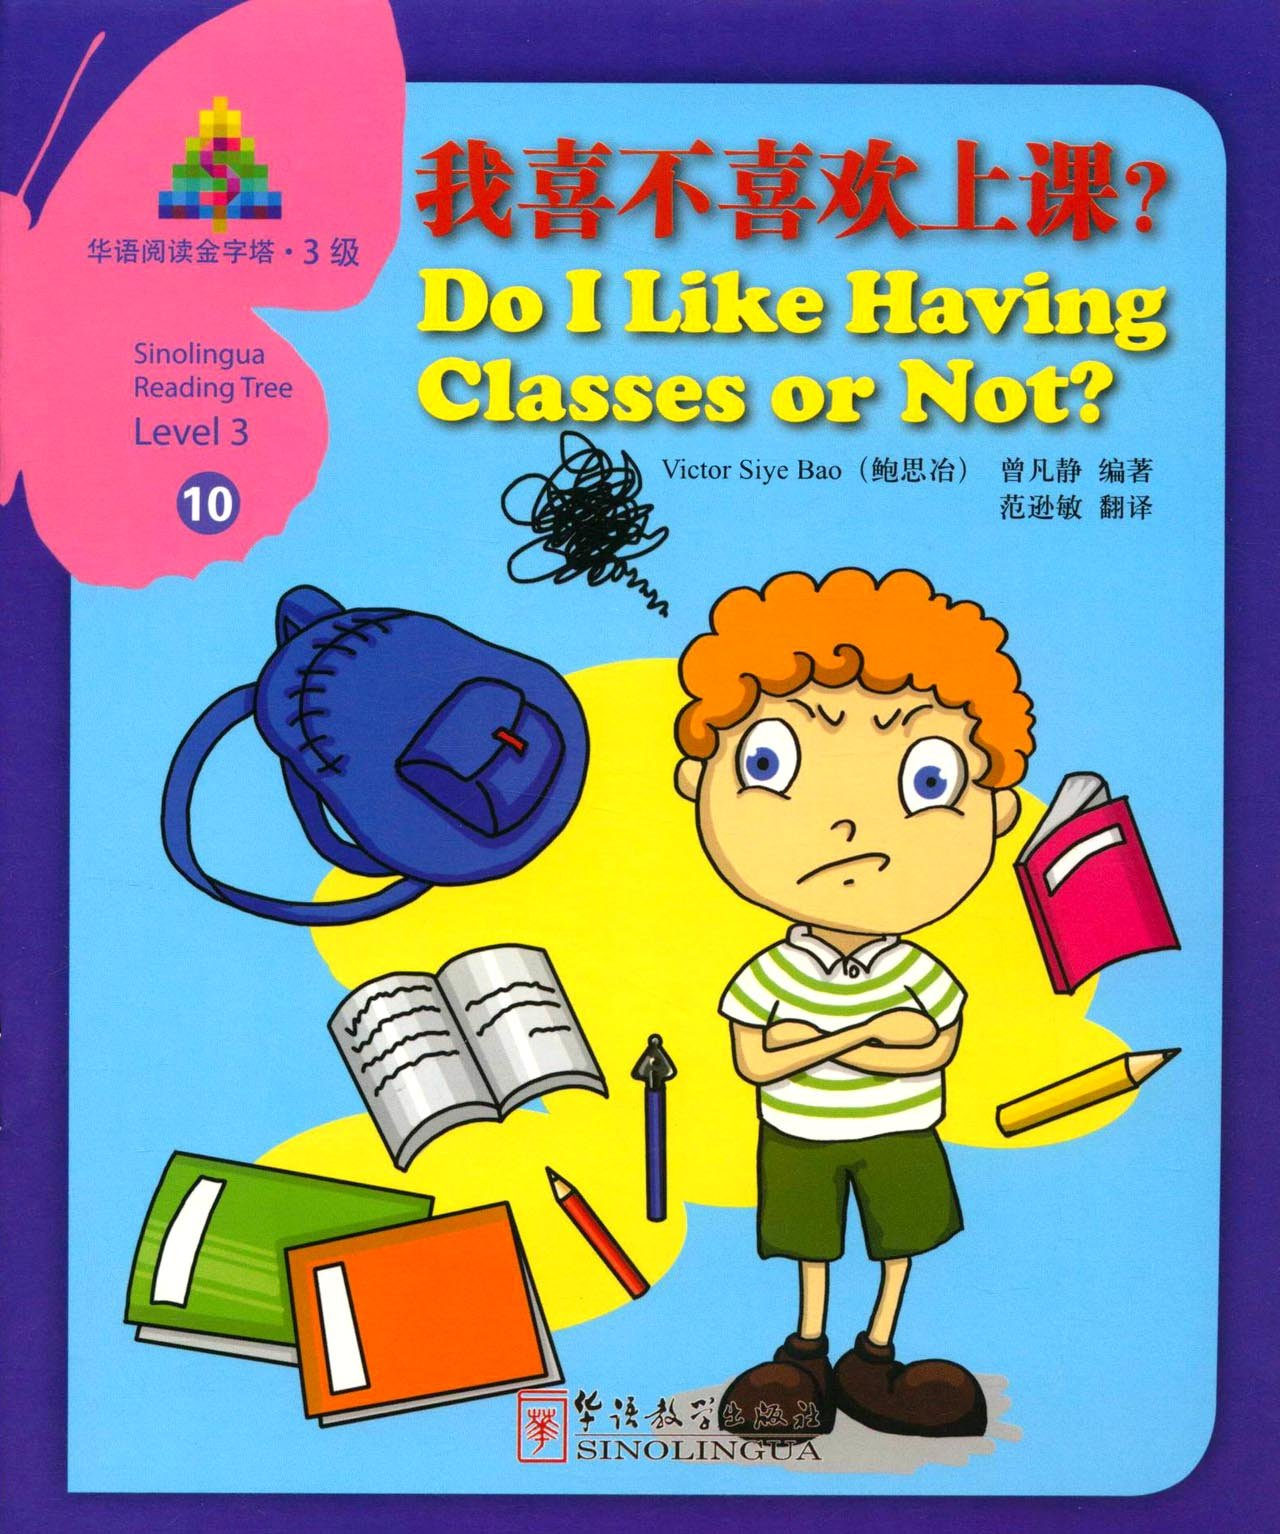 Do I Like Having Classes or Not? - Sinolingua Reading Tree Level 3